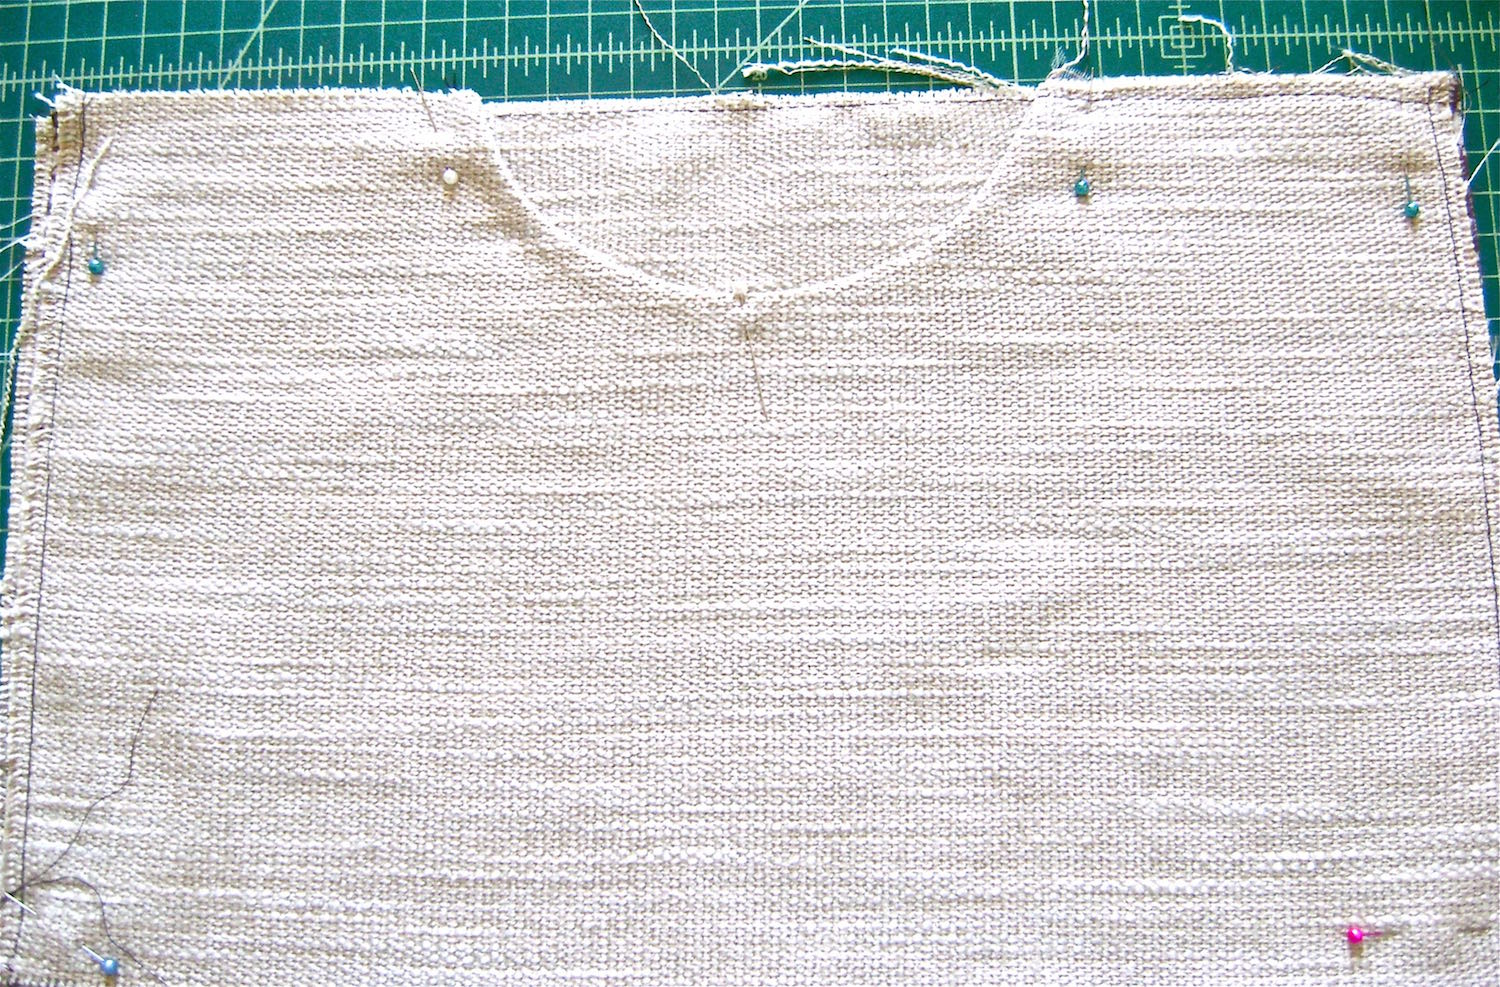 "step 2 -  Pockets   Use the template to cut out the pocket opening shape.  Sew the linings to the pocket pieces right sides together with stay tape on the 5/8"" seam line.  Topstitch seam allowance to the lining.  Trim the seam allowance.  Press with wrong sides together.  Align the top of the front pocket to the top of the woven fabric with the lining against the right side of the woven fabric.  Machine baste the top edge and sides."